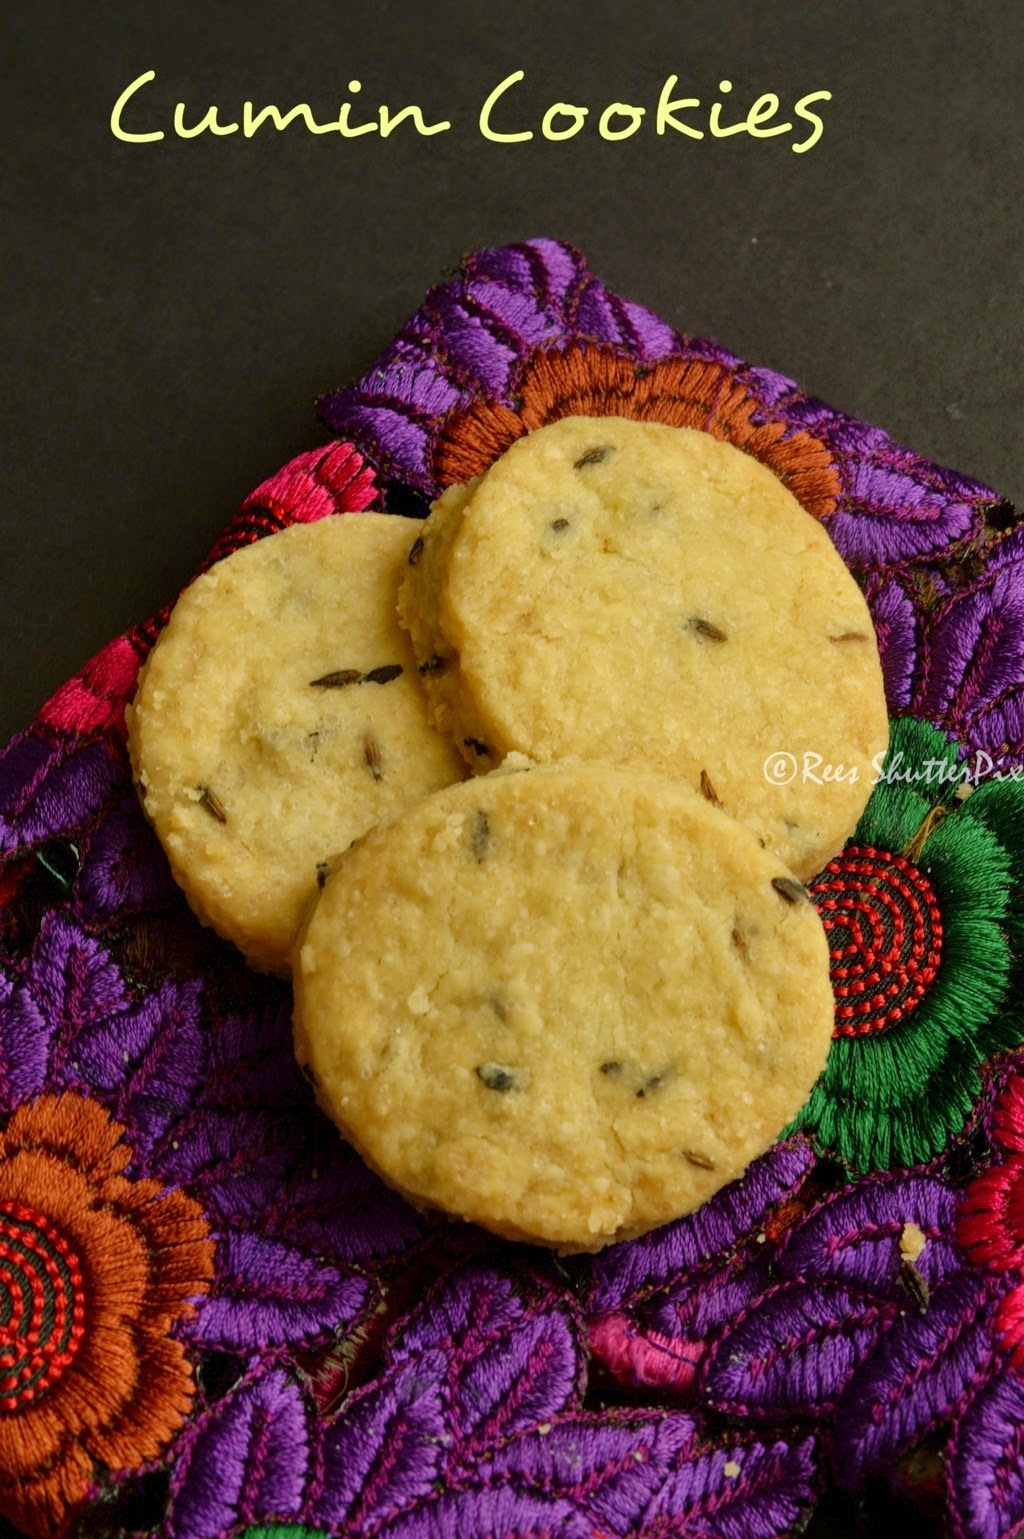 Cumin Cookies Recipe | Jeera Cookies Recipe | Tea Time Snacks,cumin cookies recipe, jeera biscuits recipe, easy cookie recipe, delectable flavours cookies, salt biscuits recipes, easy cookie recipe, how to make cumin cookies, jeera cookies at home, eggless cookies,eggless jeera cookies